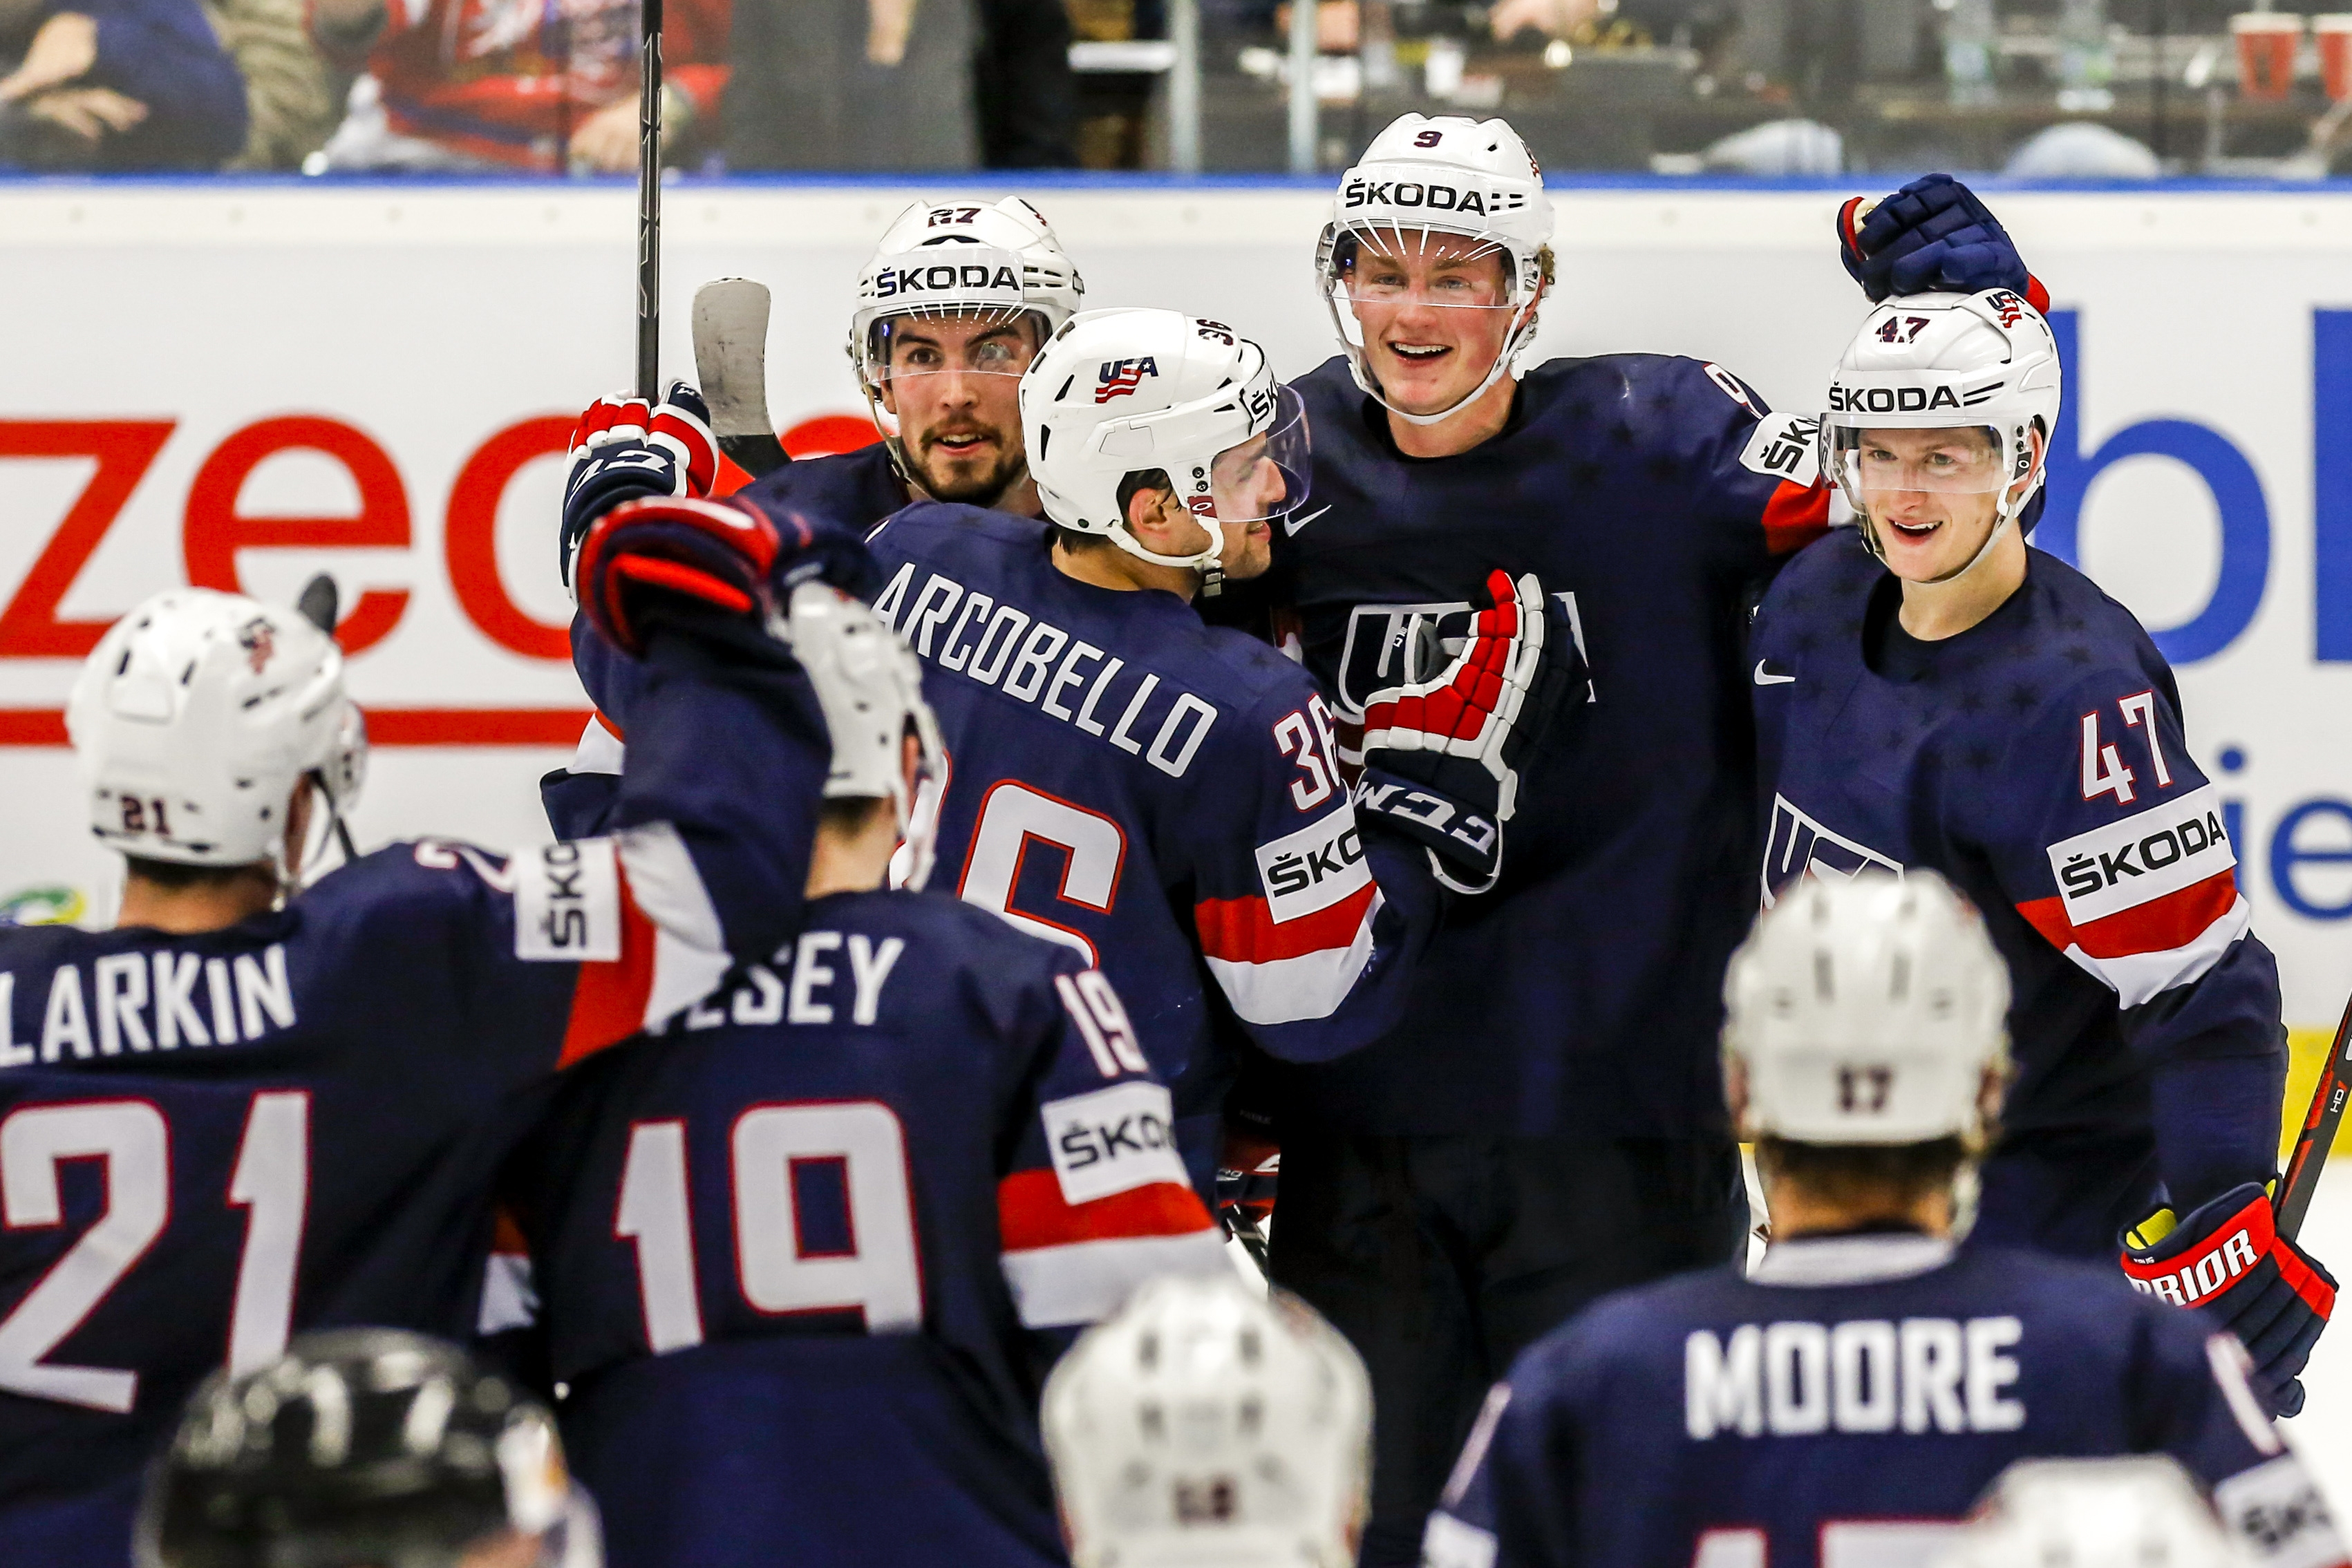 USA players celebrate their overtime win over Slovakia in the IIHF World Championship Group B match on Tuesday.